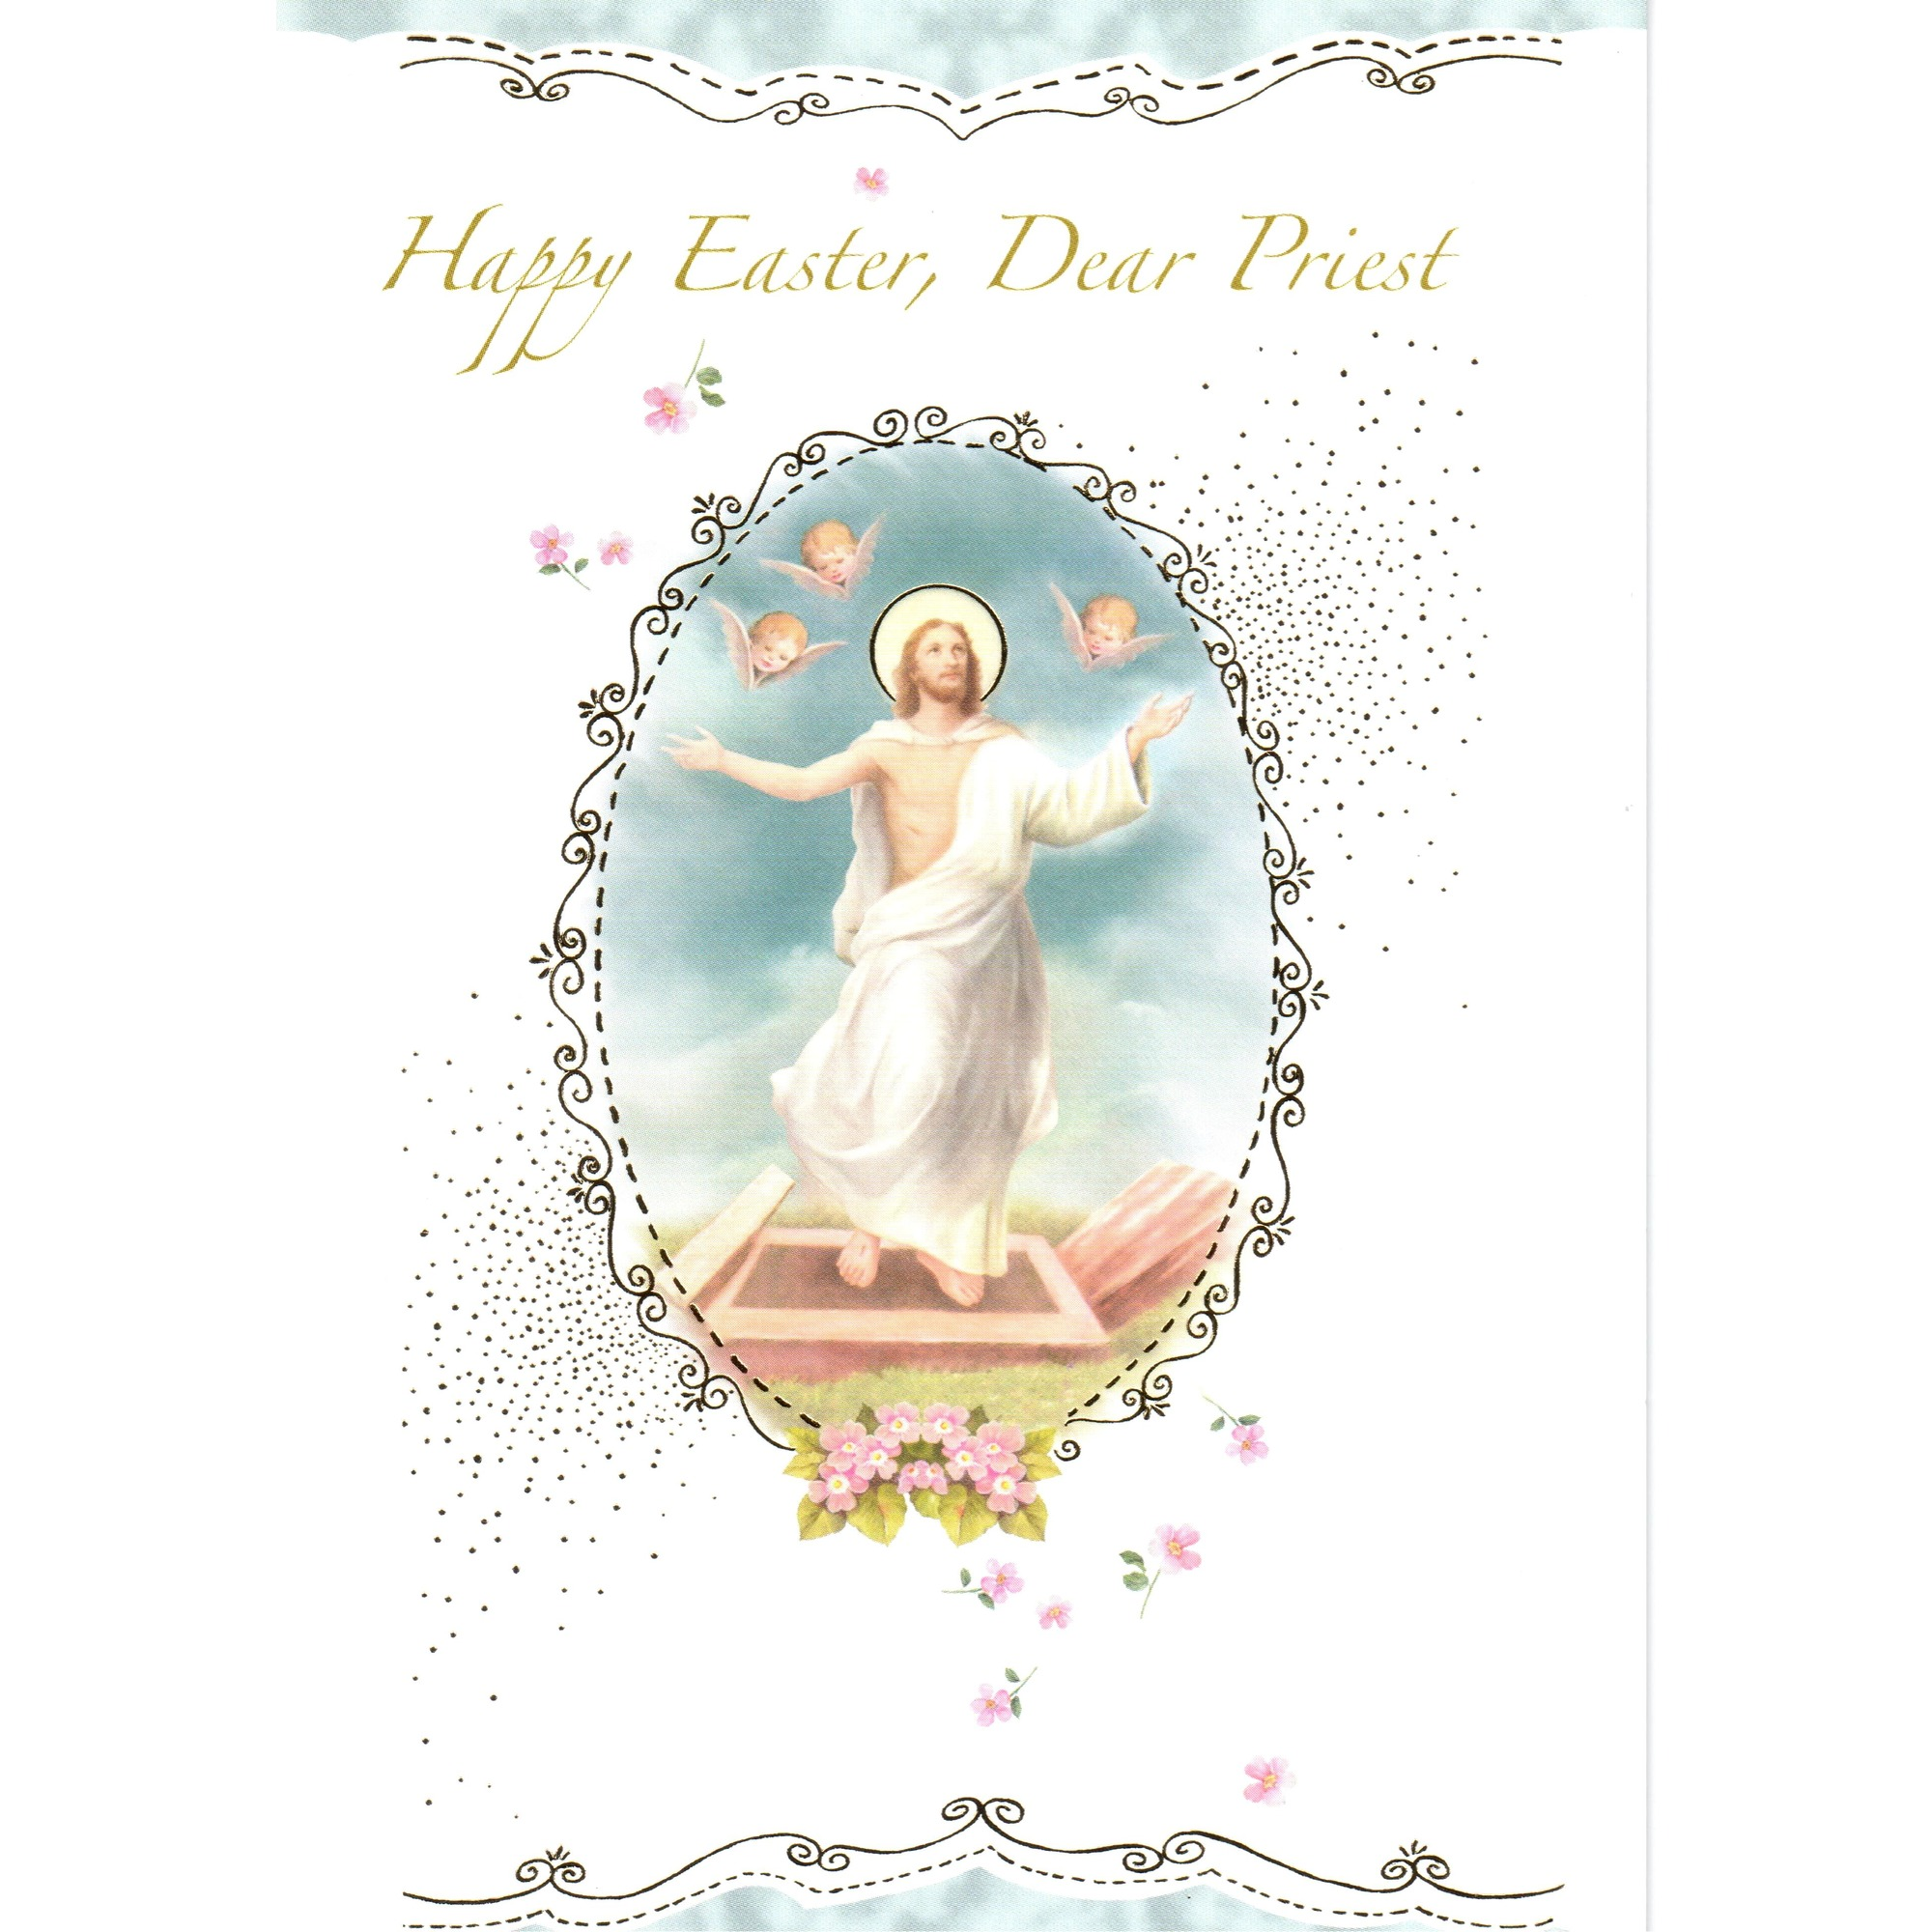 Priest easter greeting card the catholic company kristyandbryce Image collections